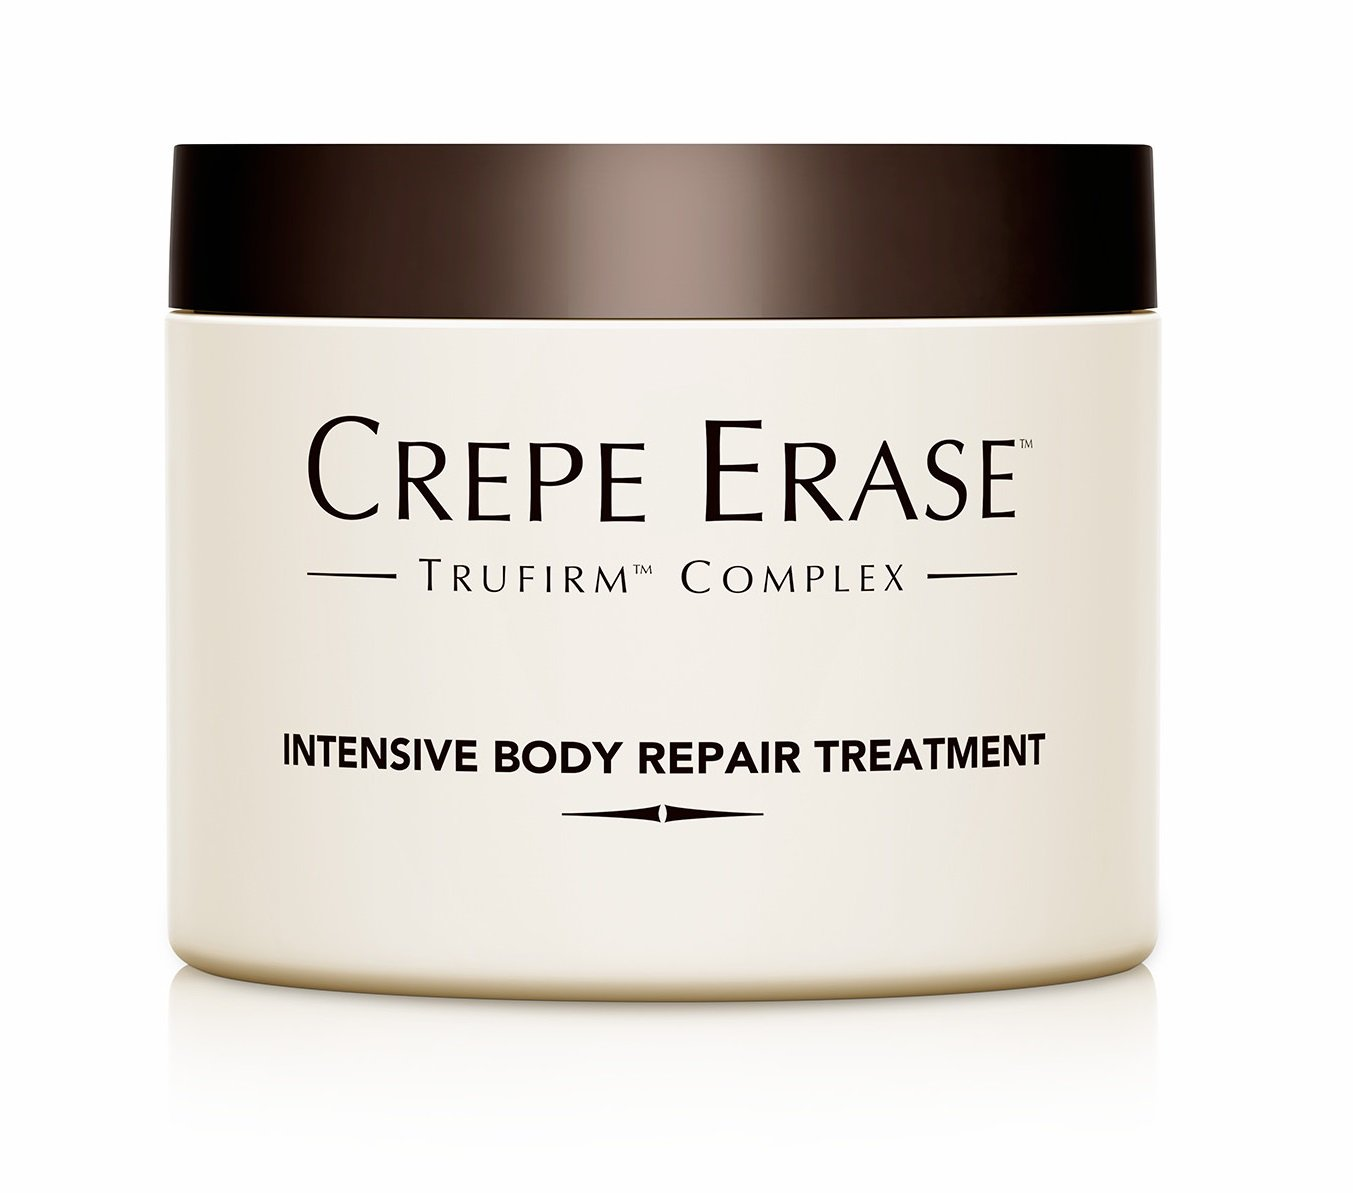 Top 10 Best Body Lotions For Crepey Skin (Things to know in 2019) 3